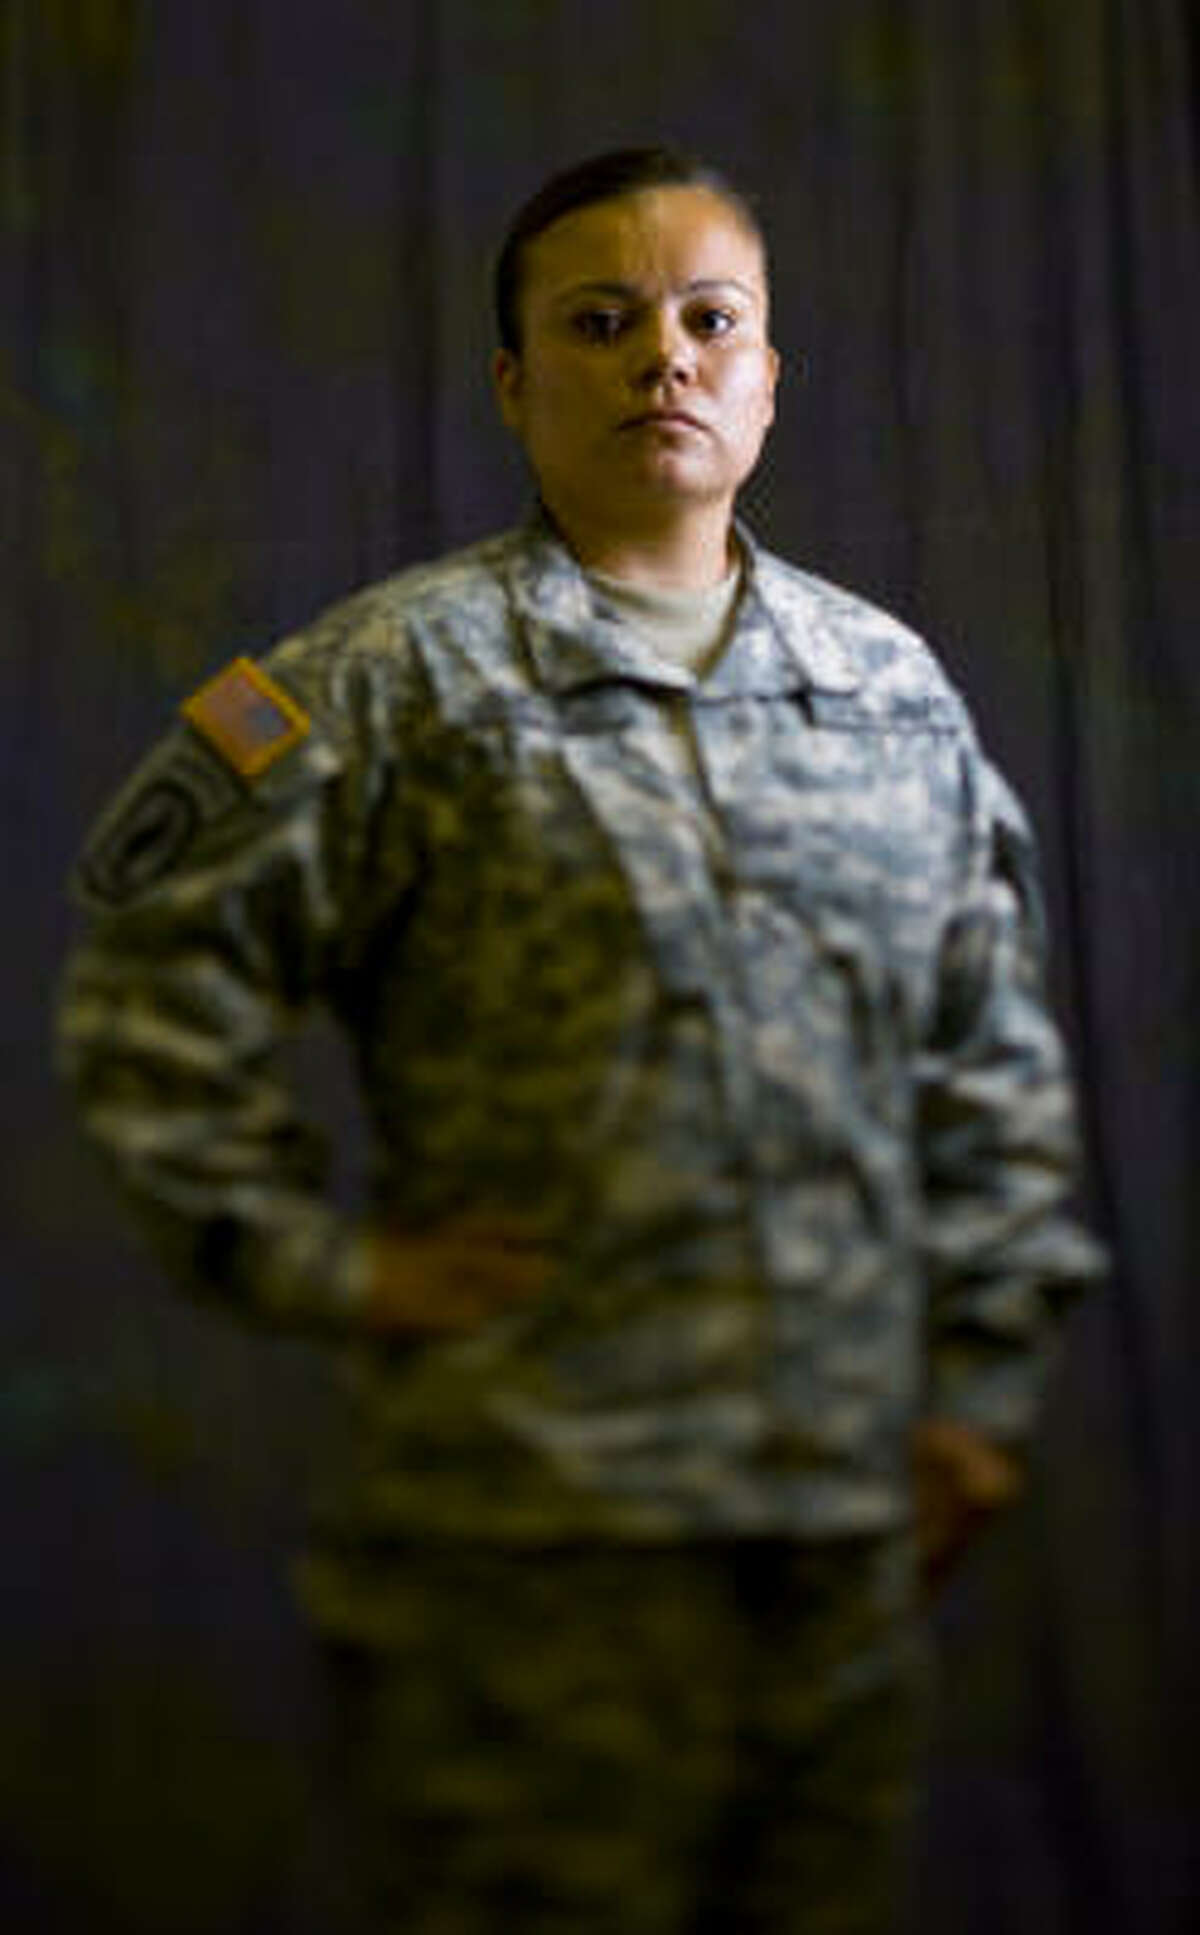 Erendira Jimenez is a veteran of the Afghanistan War, and was the lone female among 59 men. Read the story: Called to serve.